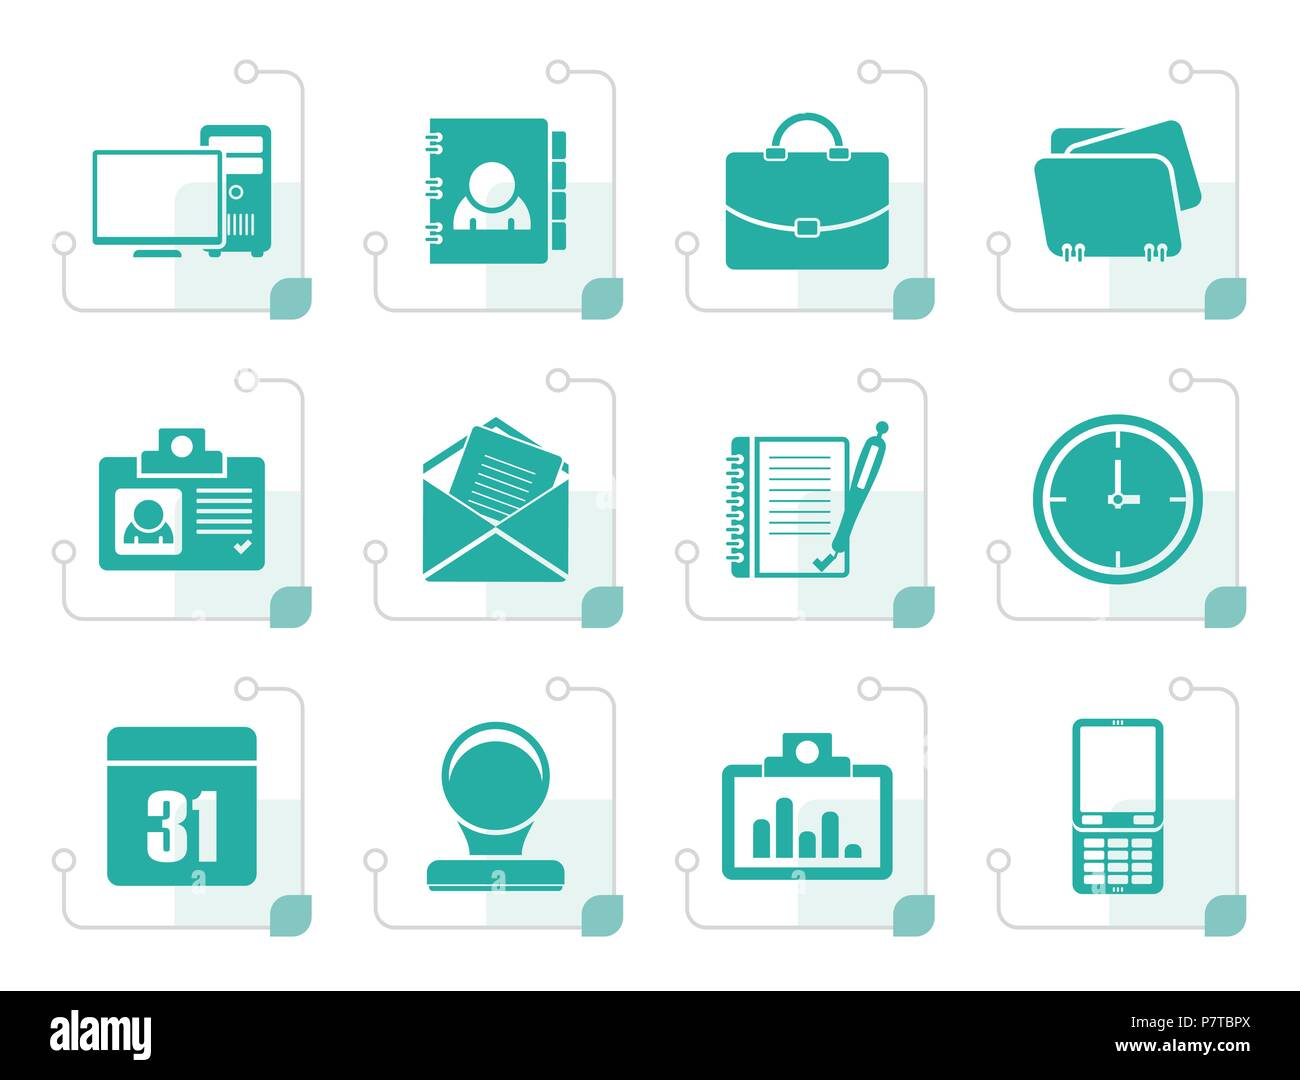 Stylized Web Applications, Business and Office icons, Universal icons - vector icon set - Stock Image